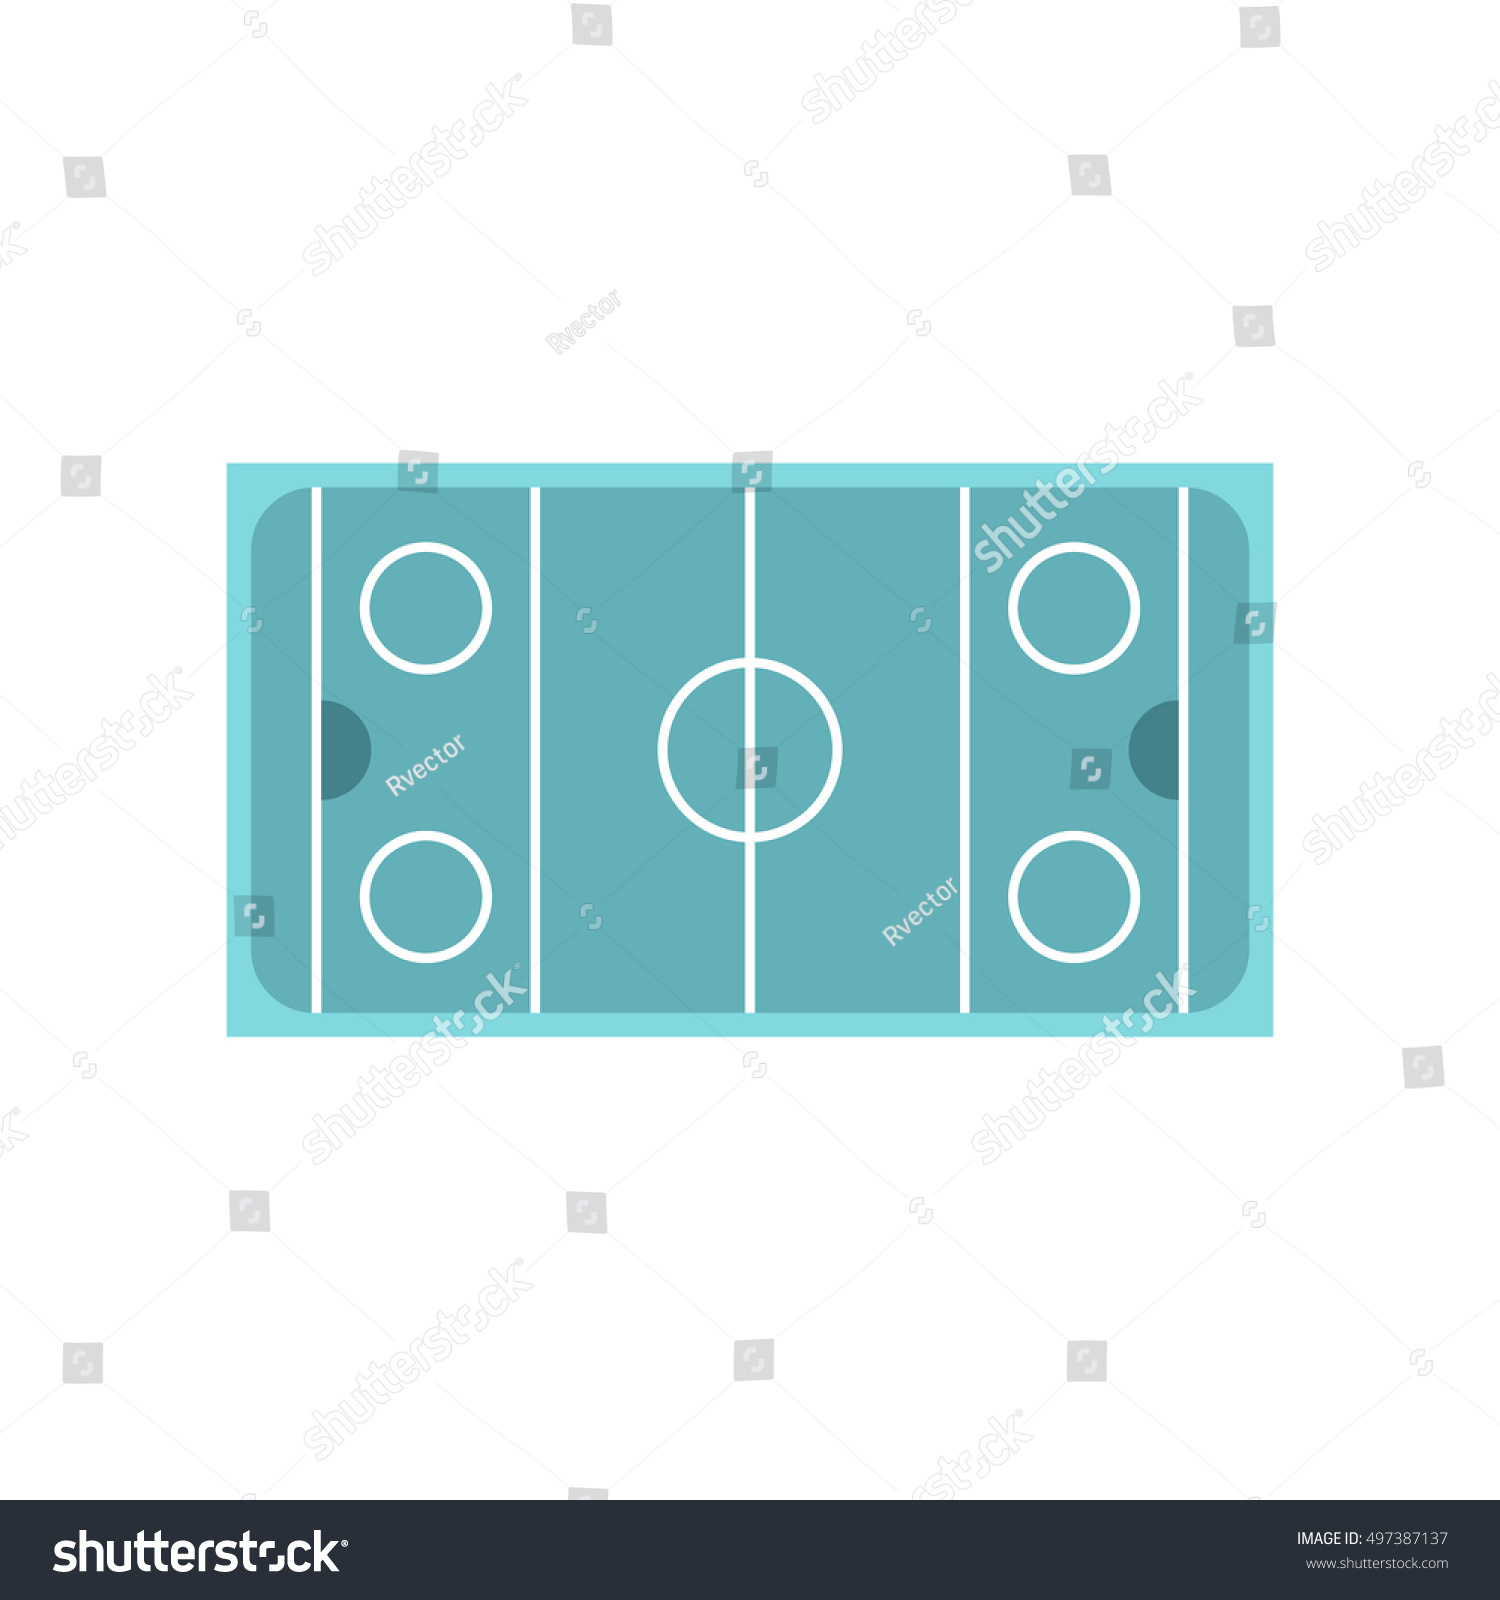 hight resolution of ice hockey rink icon in flat style on a white background illustration